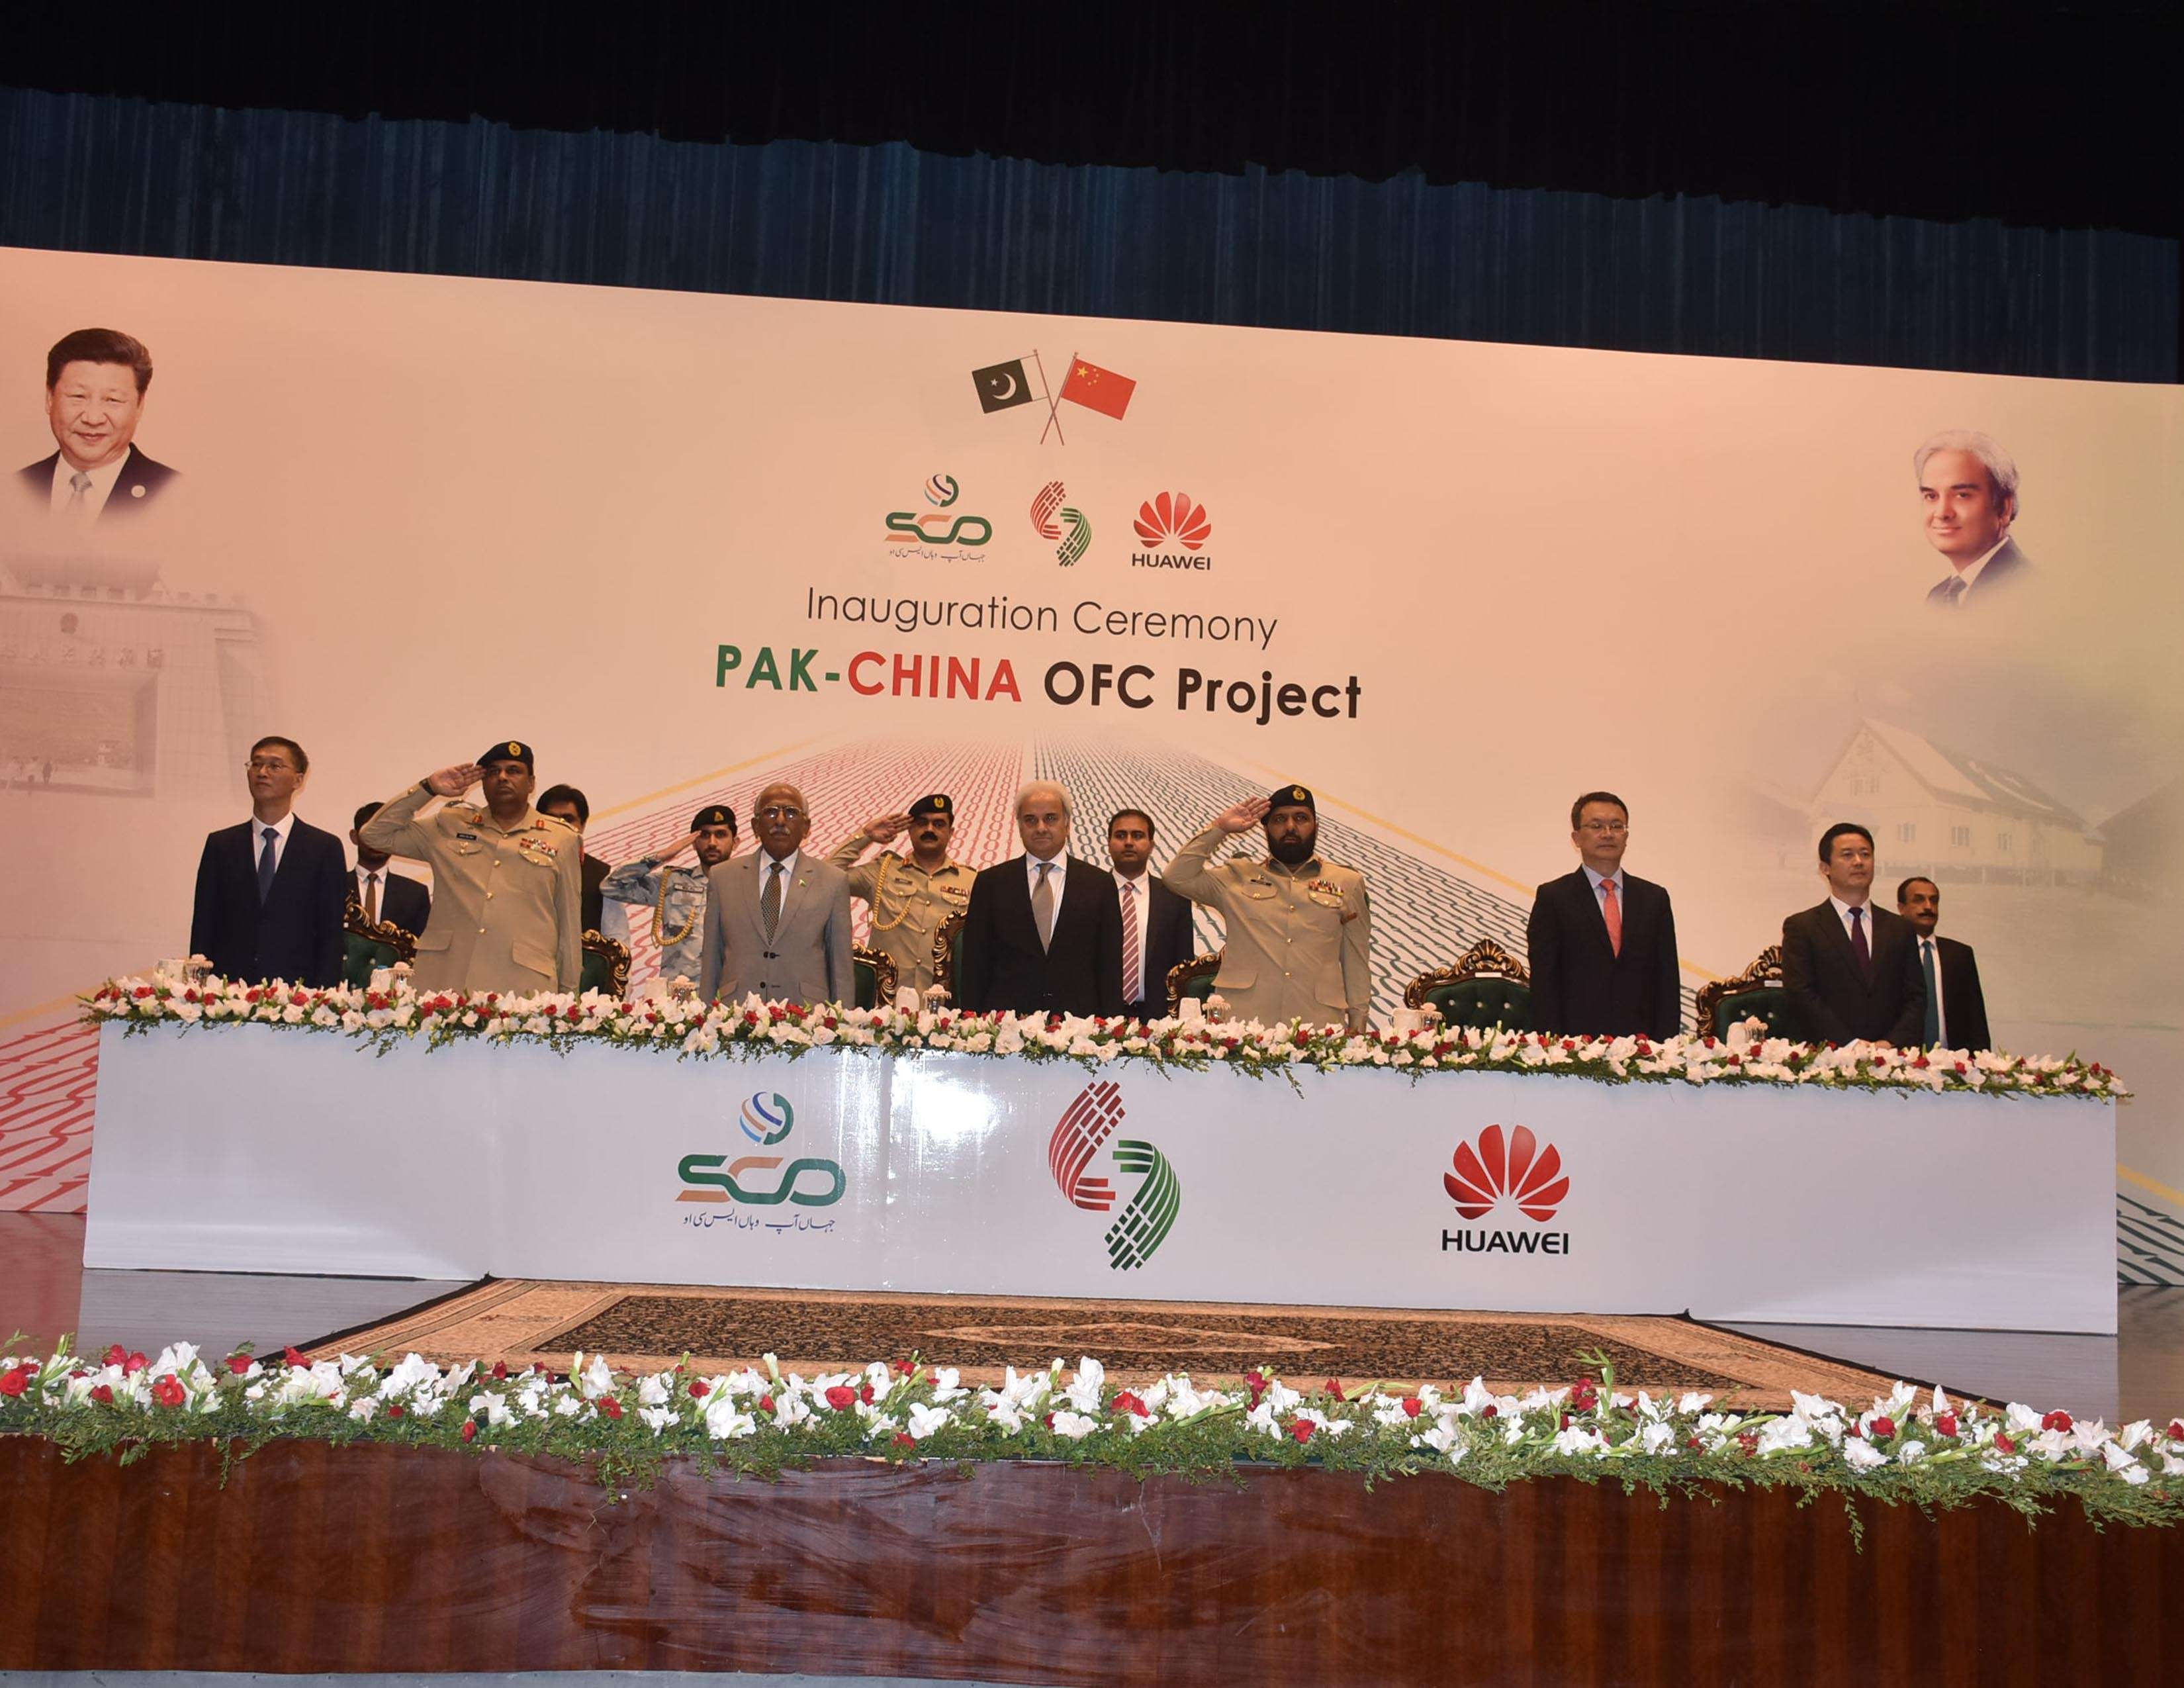 The July 13, 2018 inauguration ceremony for the Pakistan-China Optic Fiber Cable project developed under the China-Pakistan Economic Corridor. (Image Credit: Special Communications Organization, Government of Pakistan)